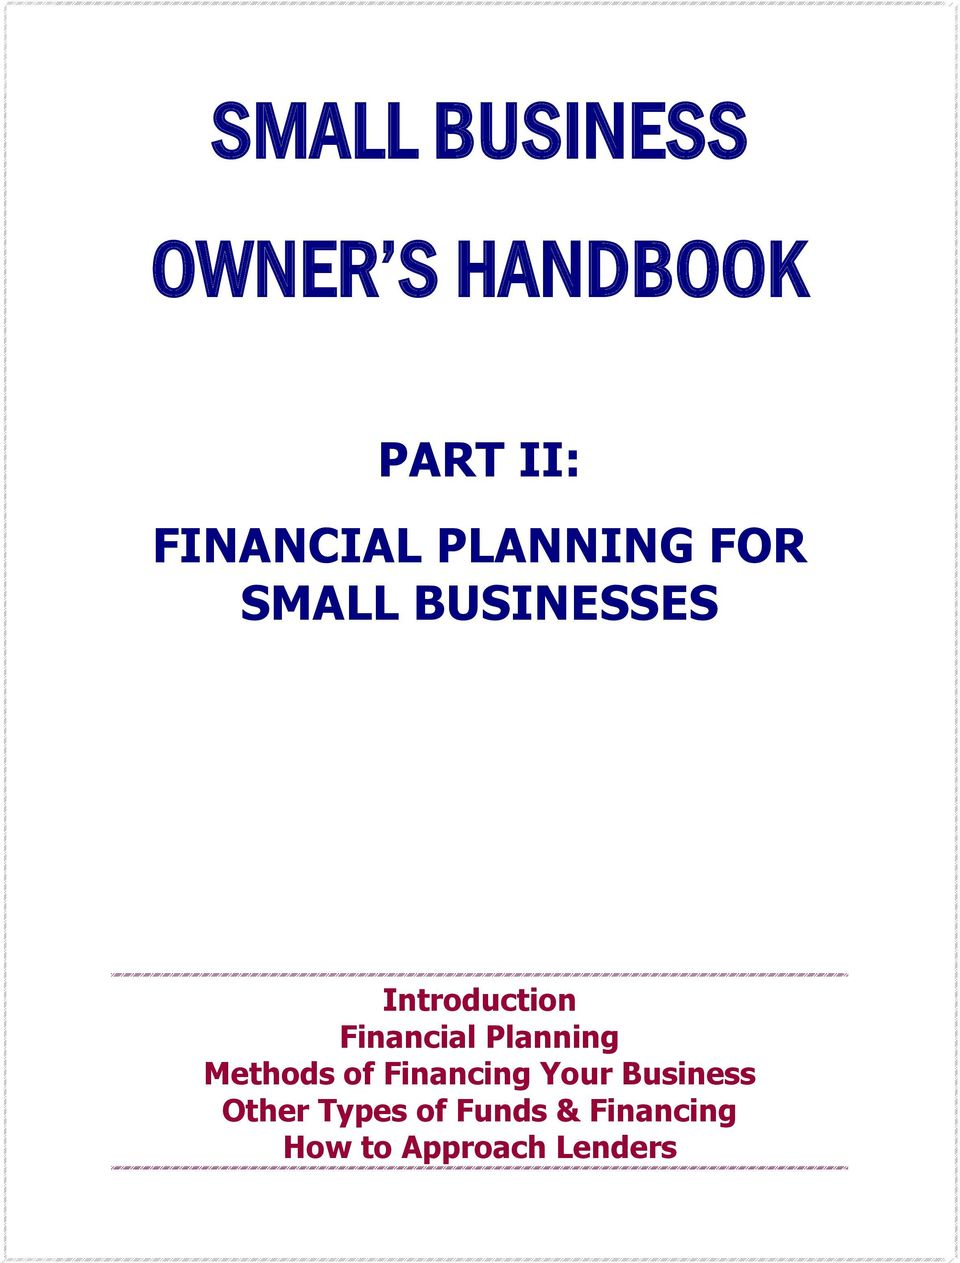 Financial Planning Methods of Financing Your